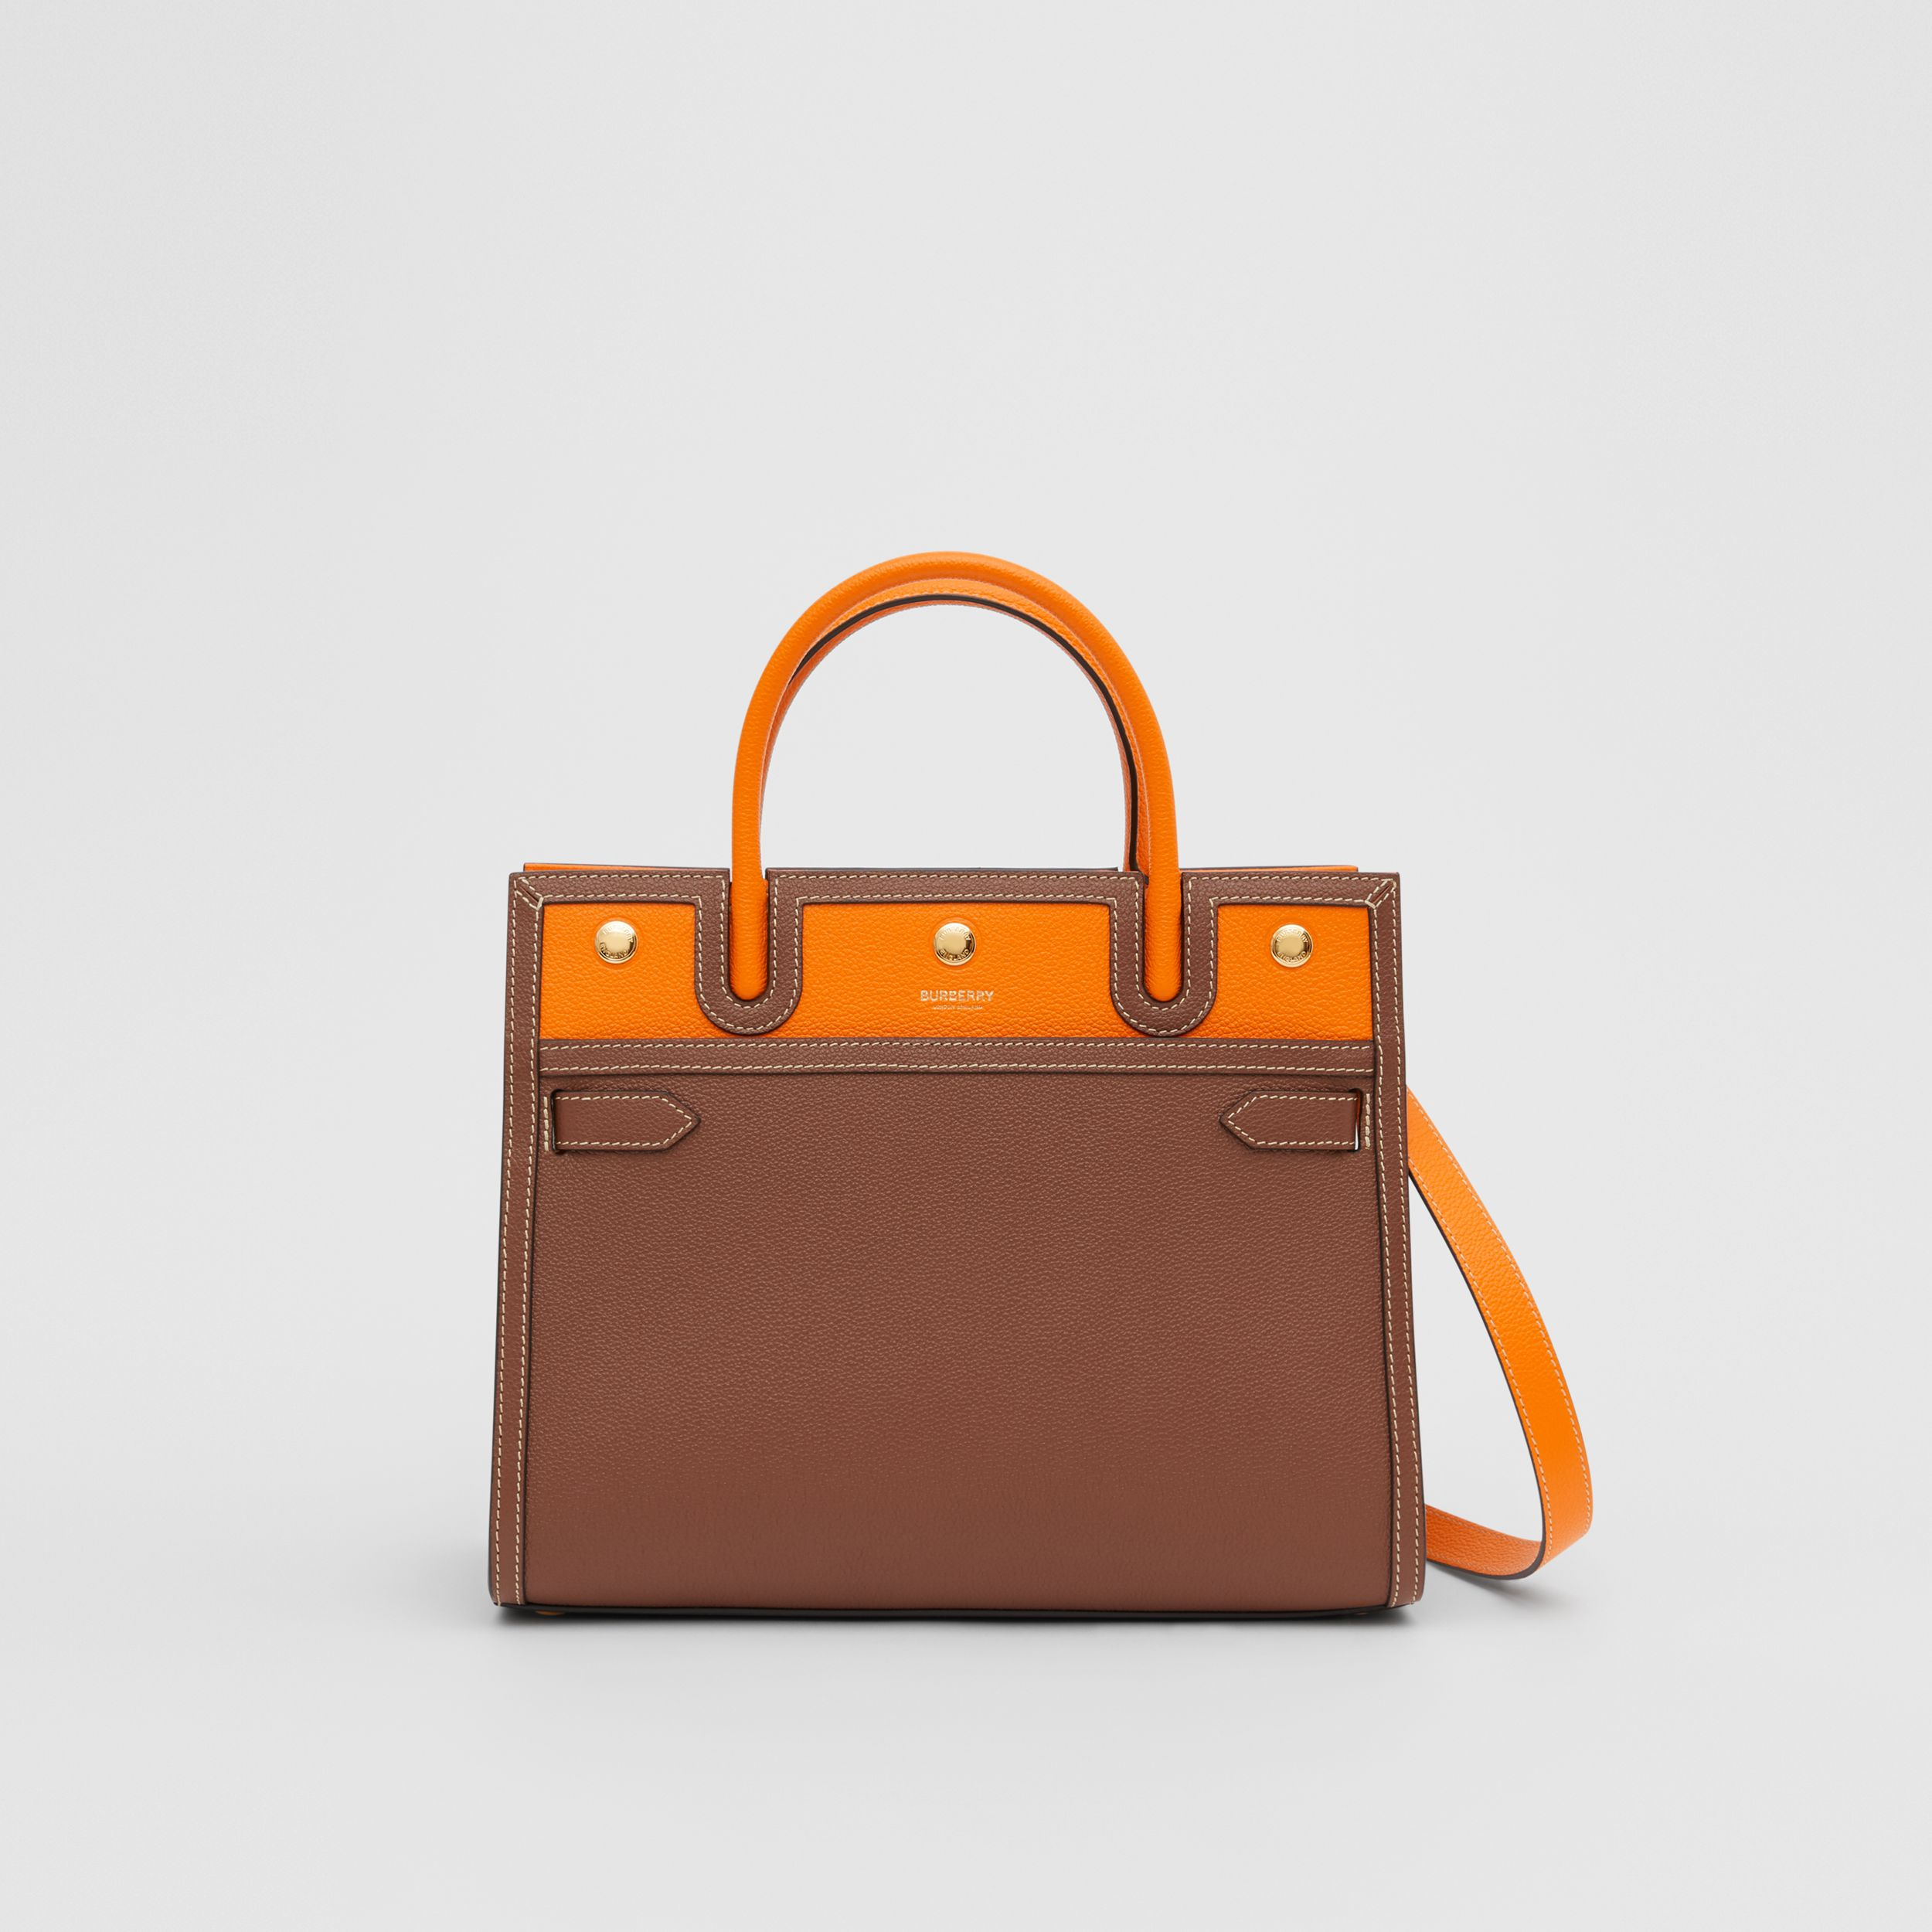 Small Leather Two-handle Title Bag in Tan/bright Orange - Women | Burberry United States - 1